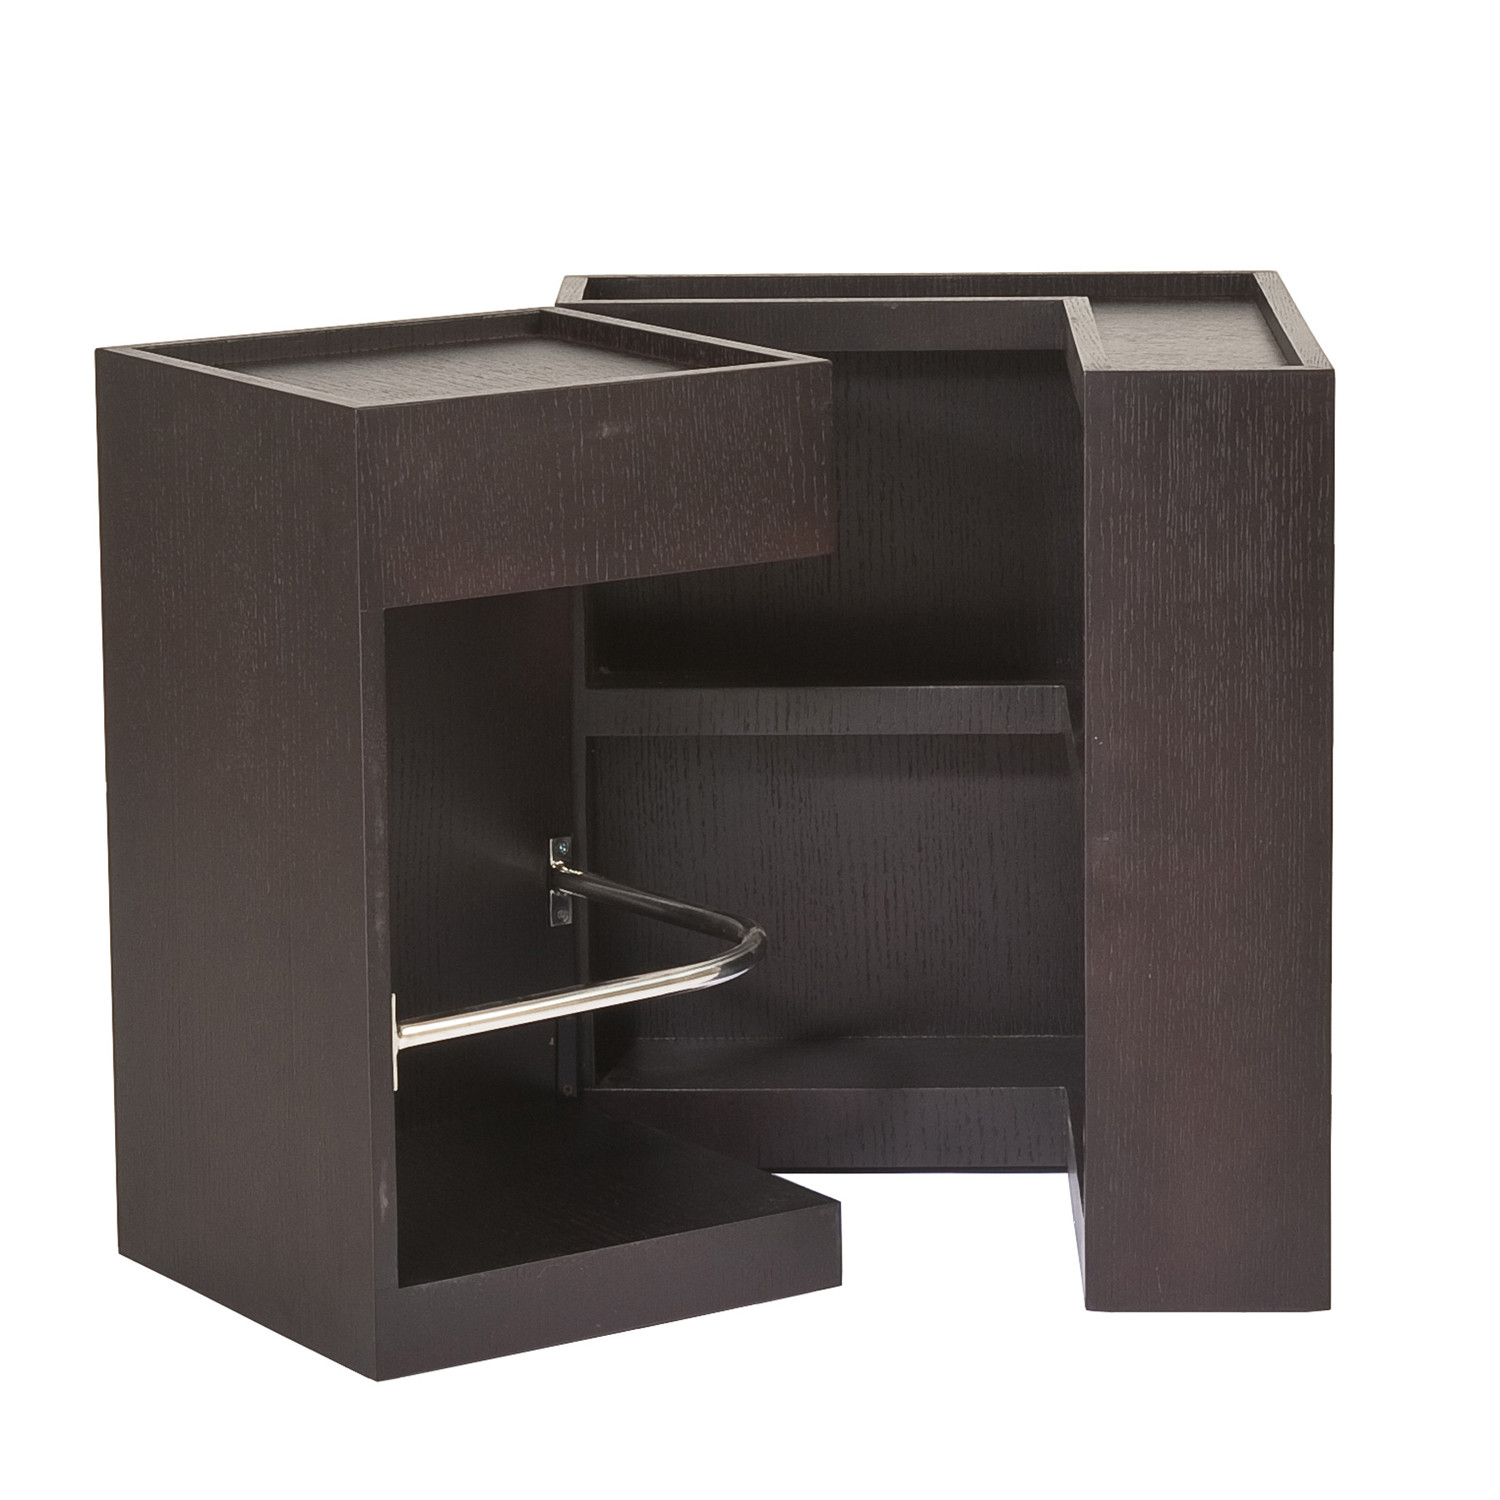 Hidden bar side table affordably modern touch of modern for 12 bar blues table